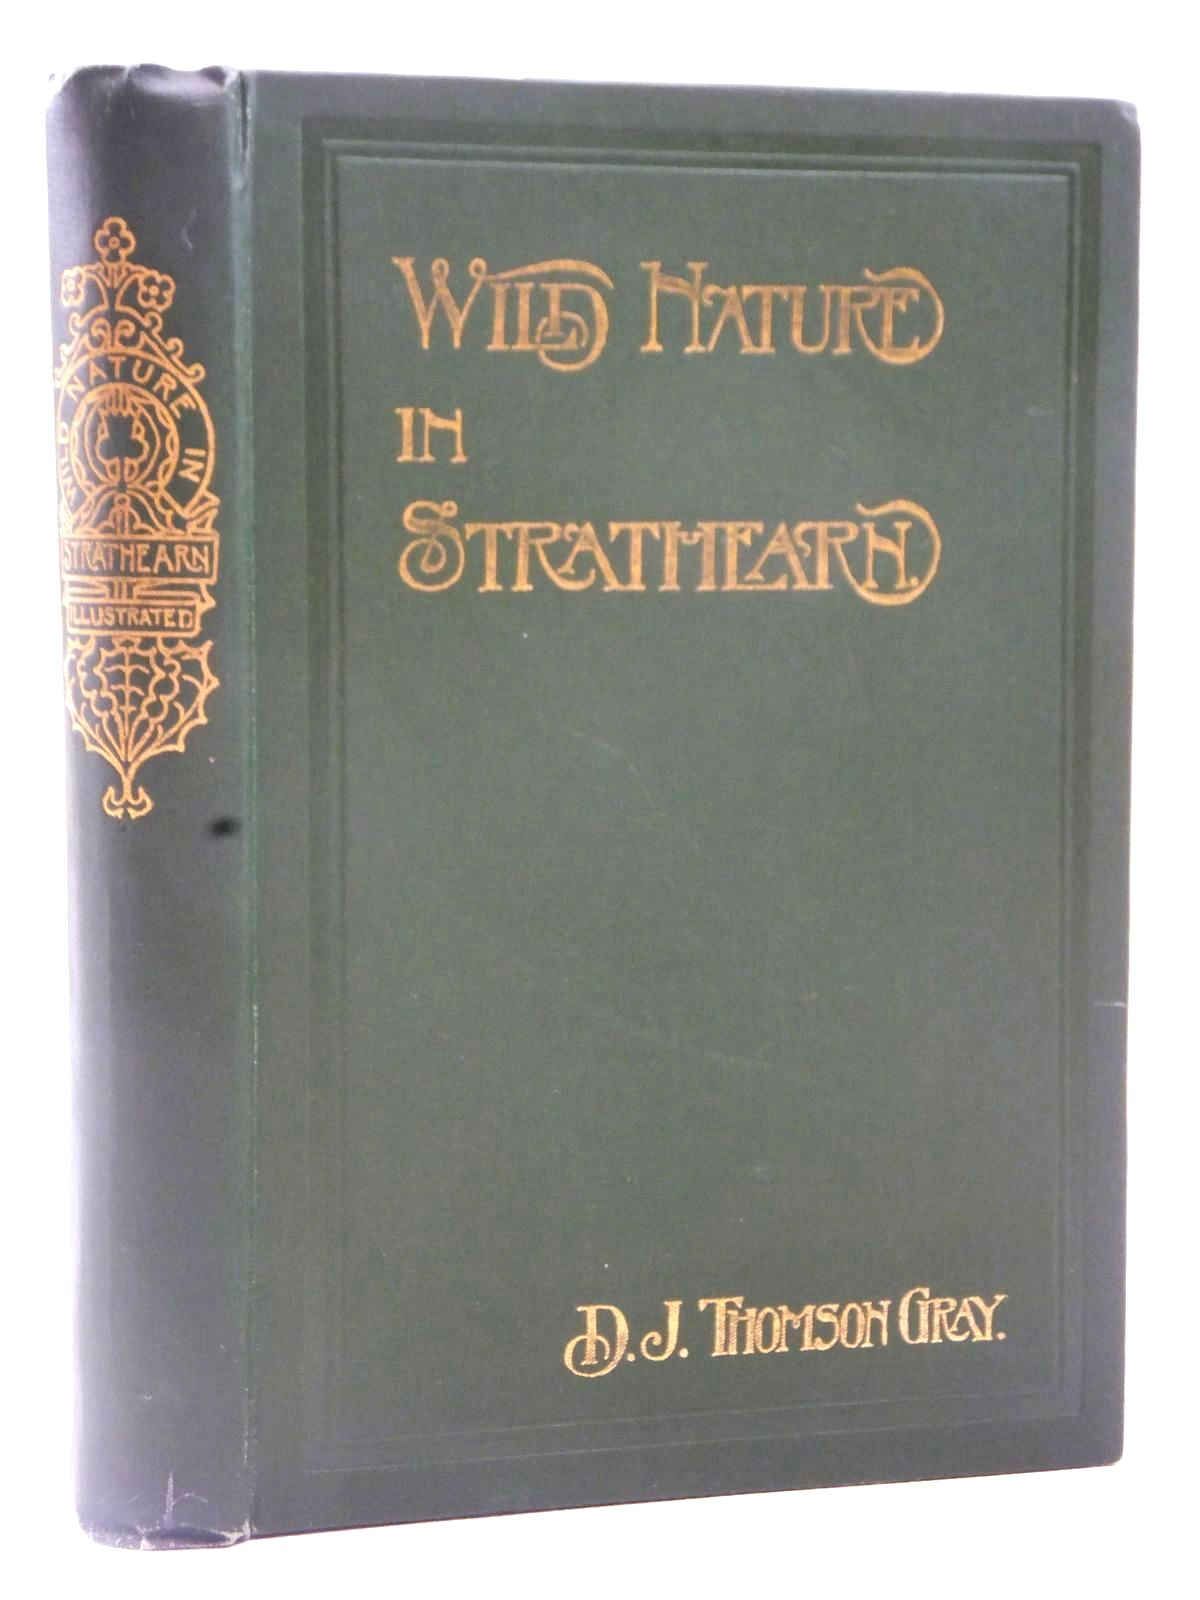 Photo of WILD NATURE IN STRATHEARN written by Gray, D.J. Thomson published by David Philips (STOCK CODE: 2122651)  for sale by Stella & Rose's Books